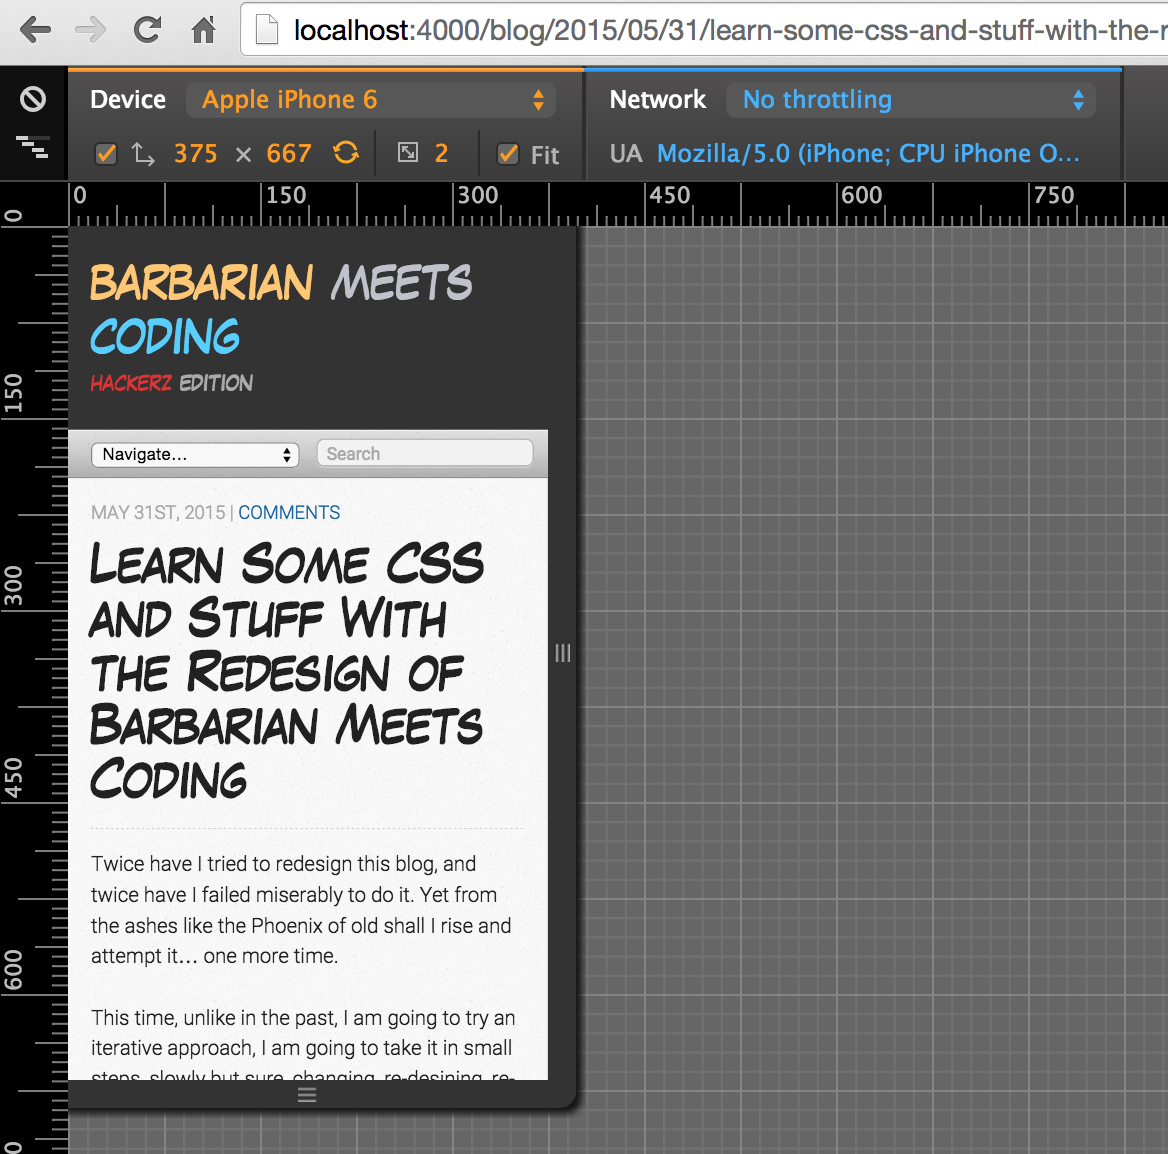 Keeping the old mobile version of barbarian meets coding